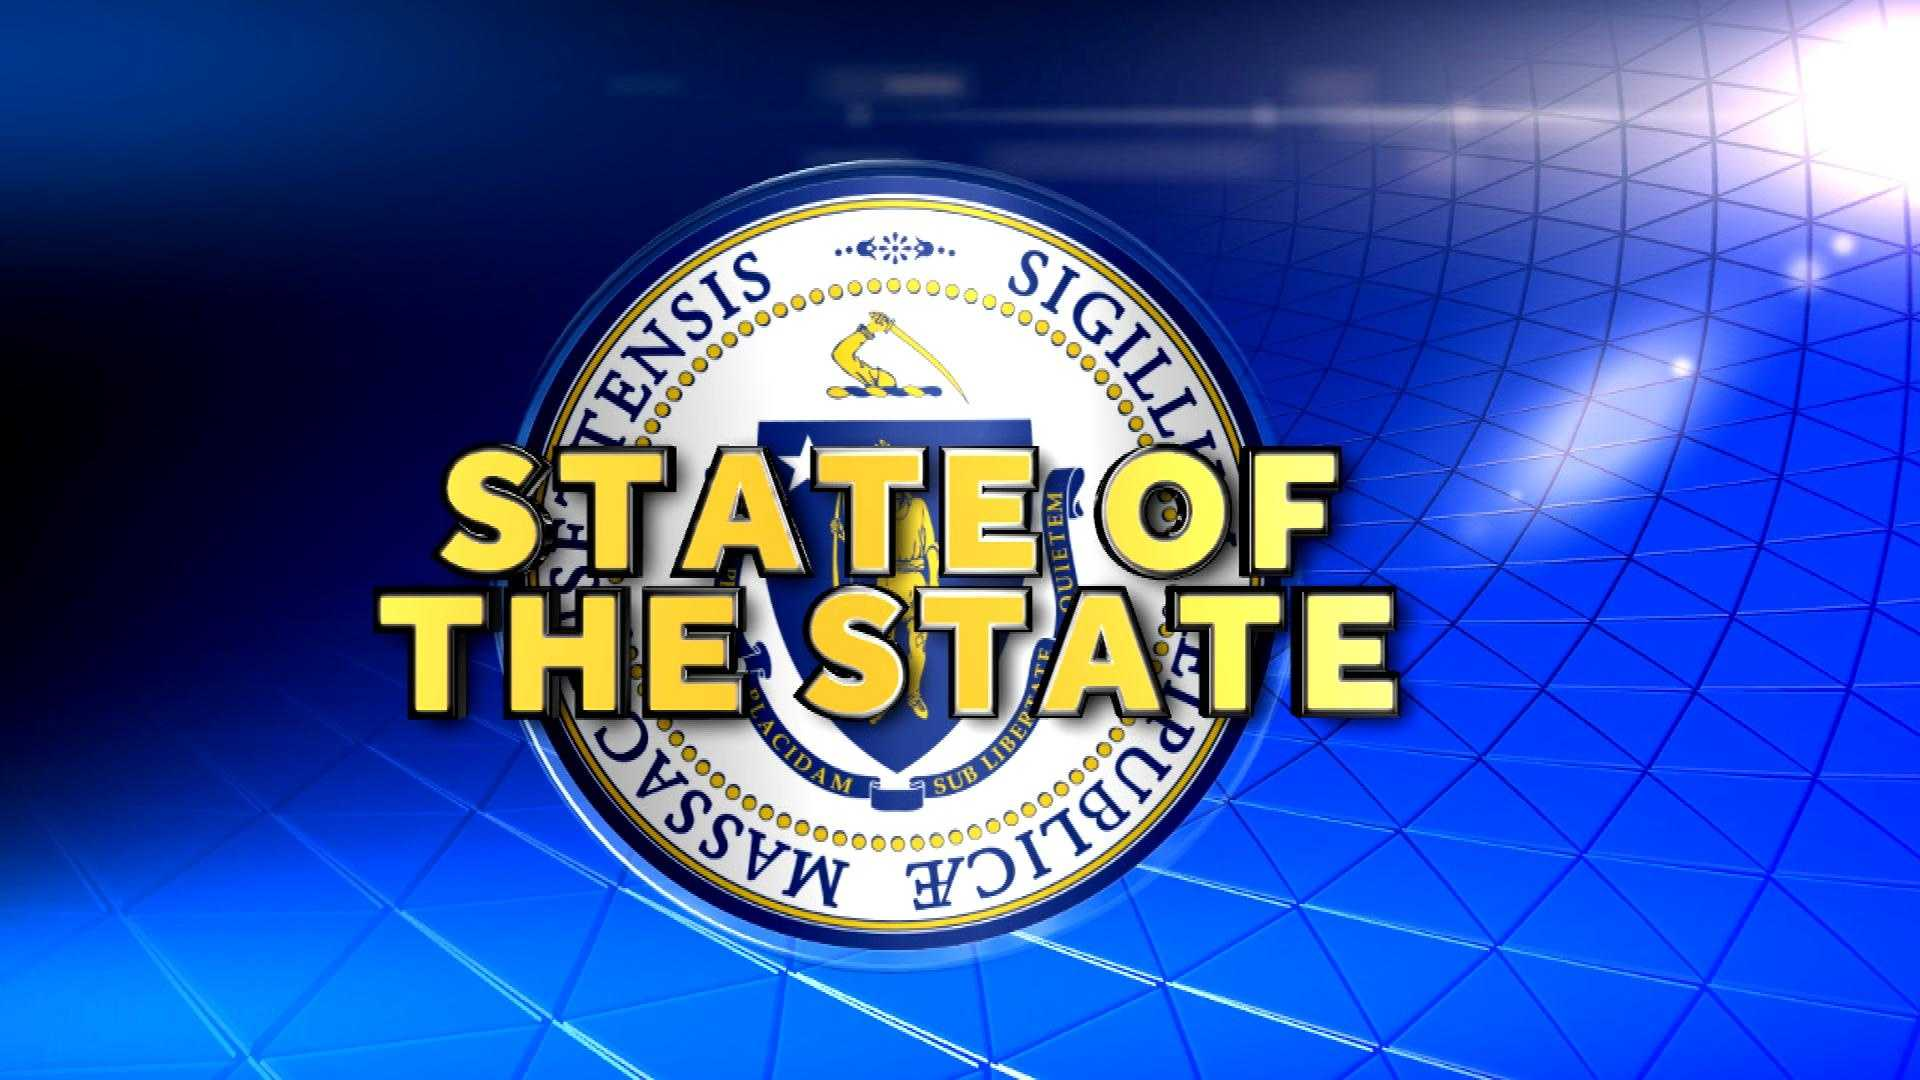 Image: State of the State